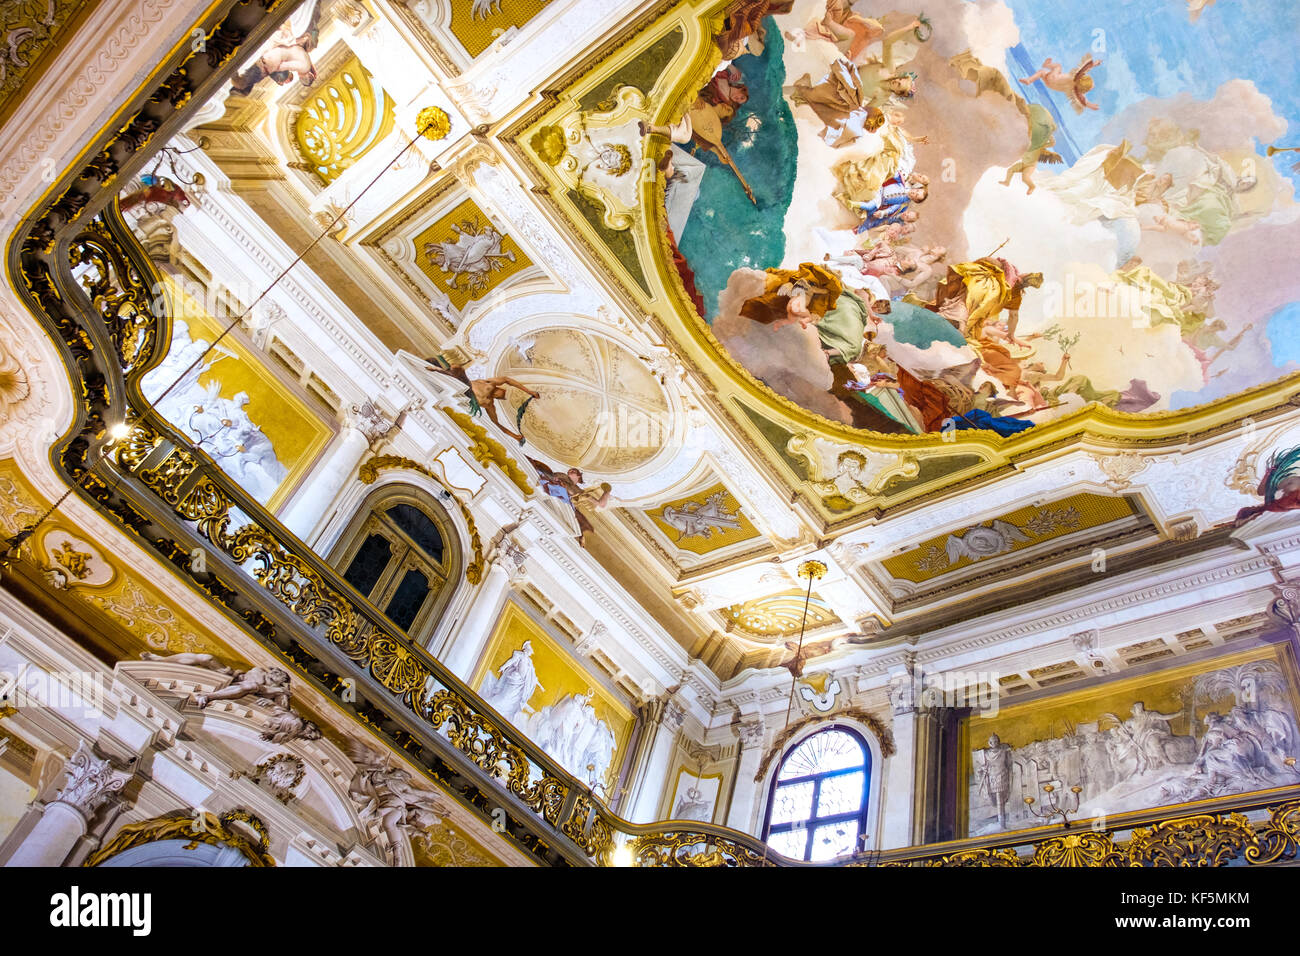 interiors of Villa Pisani, a painted fresco ceiling with golden balcony (Venice, Italy, 25 Apr 2017) - Stock Image